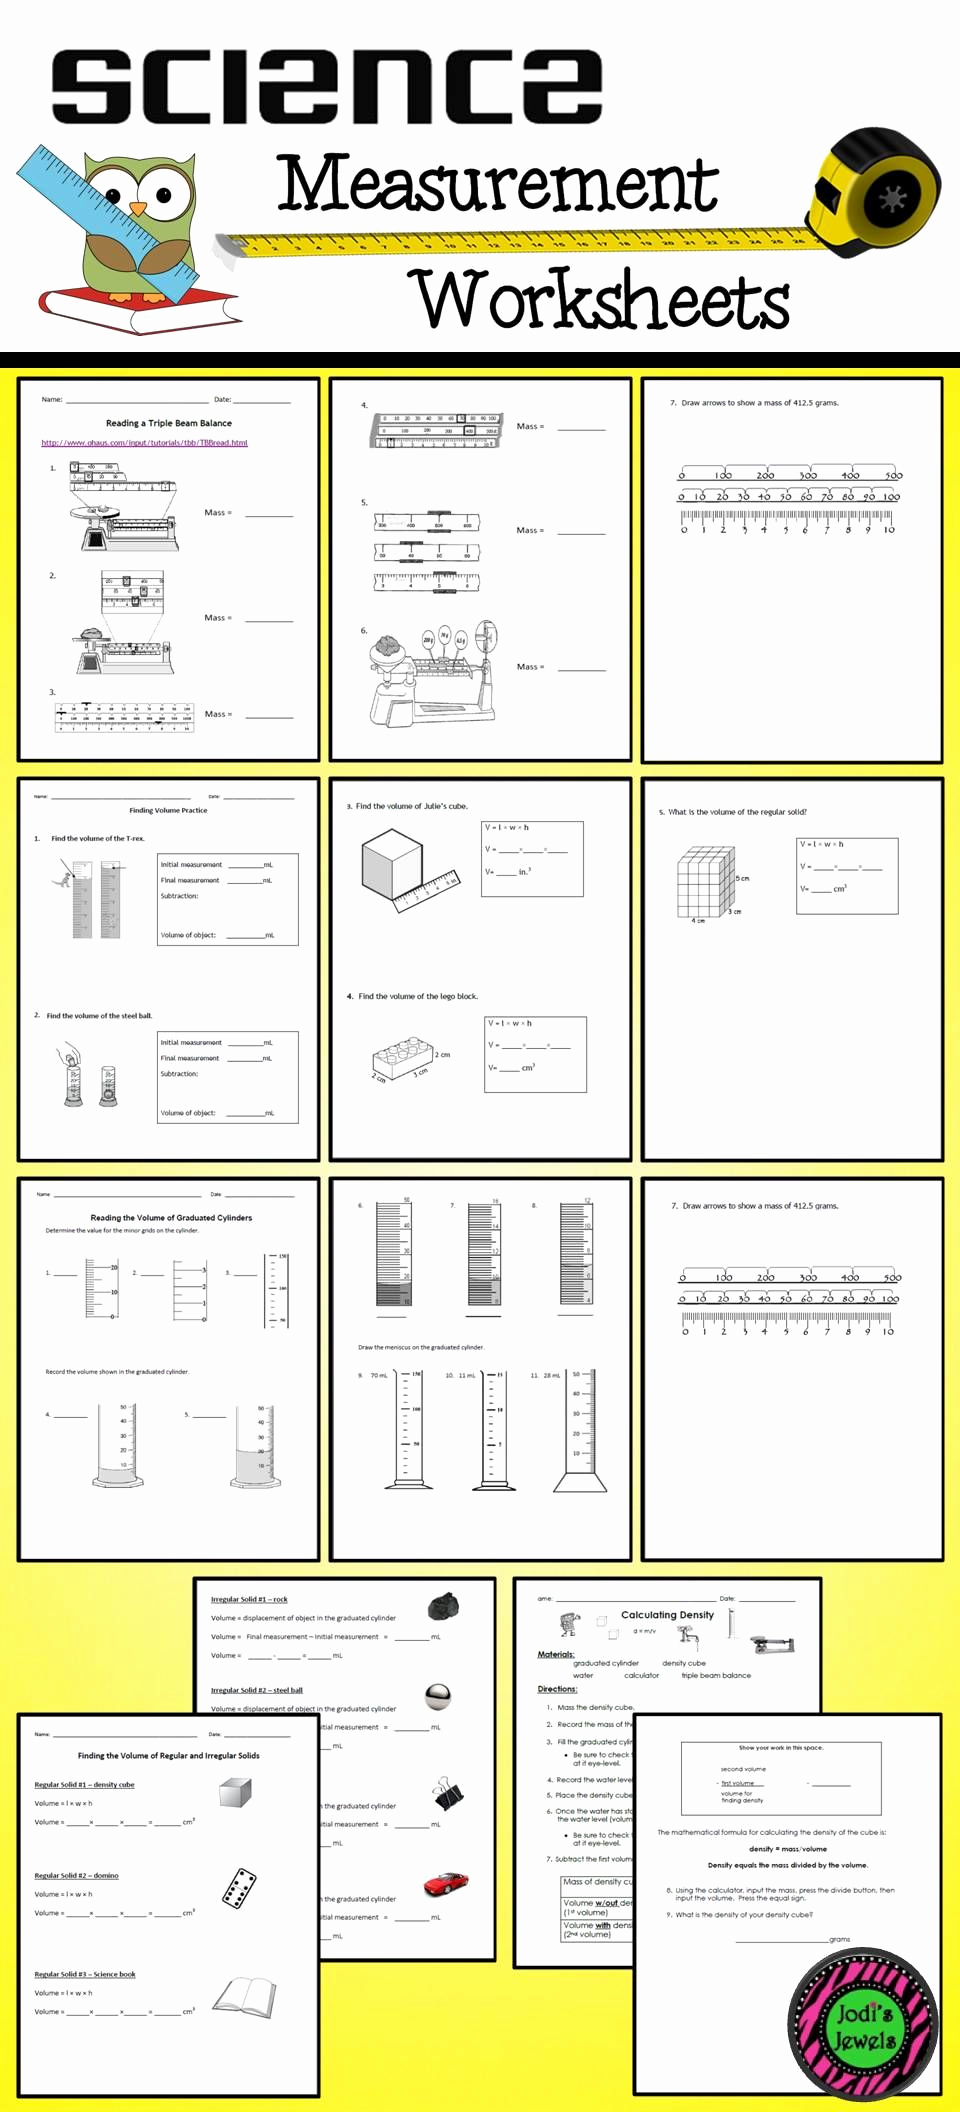 Science Measurement Worksheets Beautiful Teaching Measurement Skills is An Essential Part Of Middle